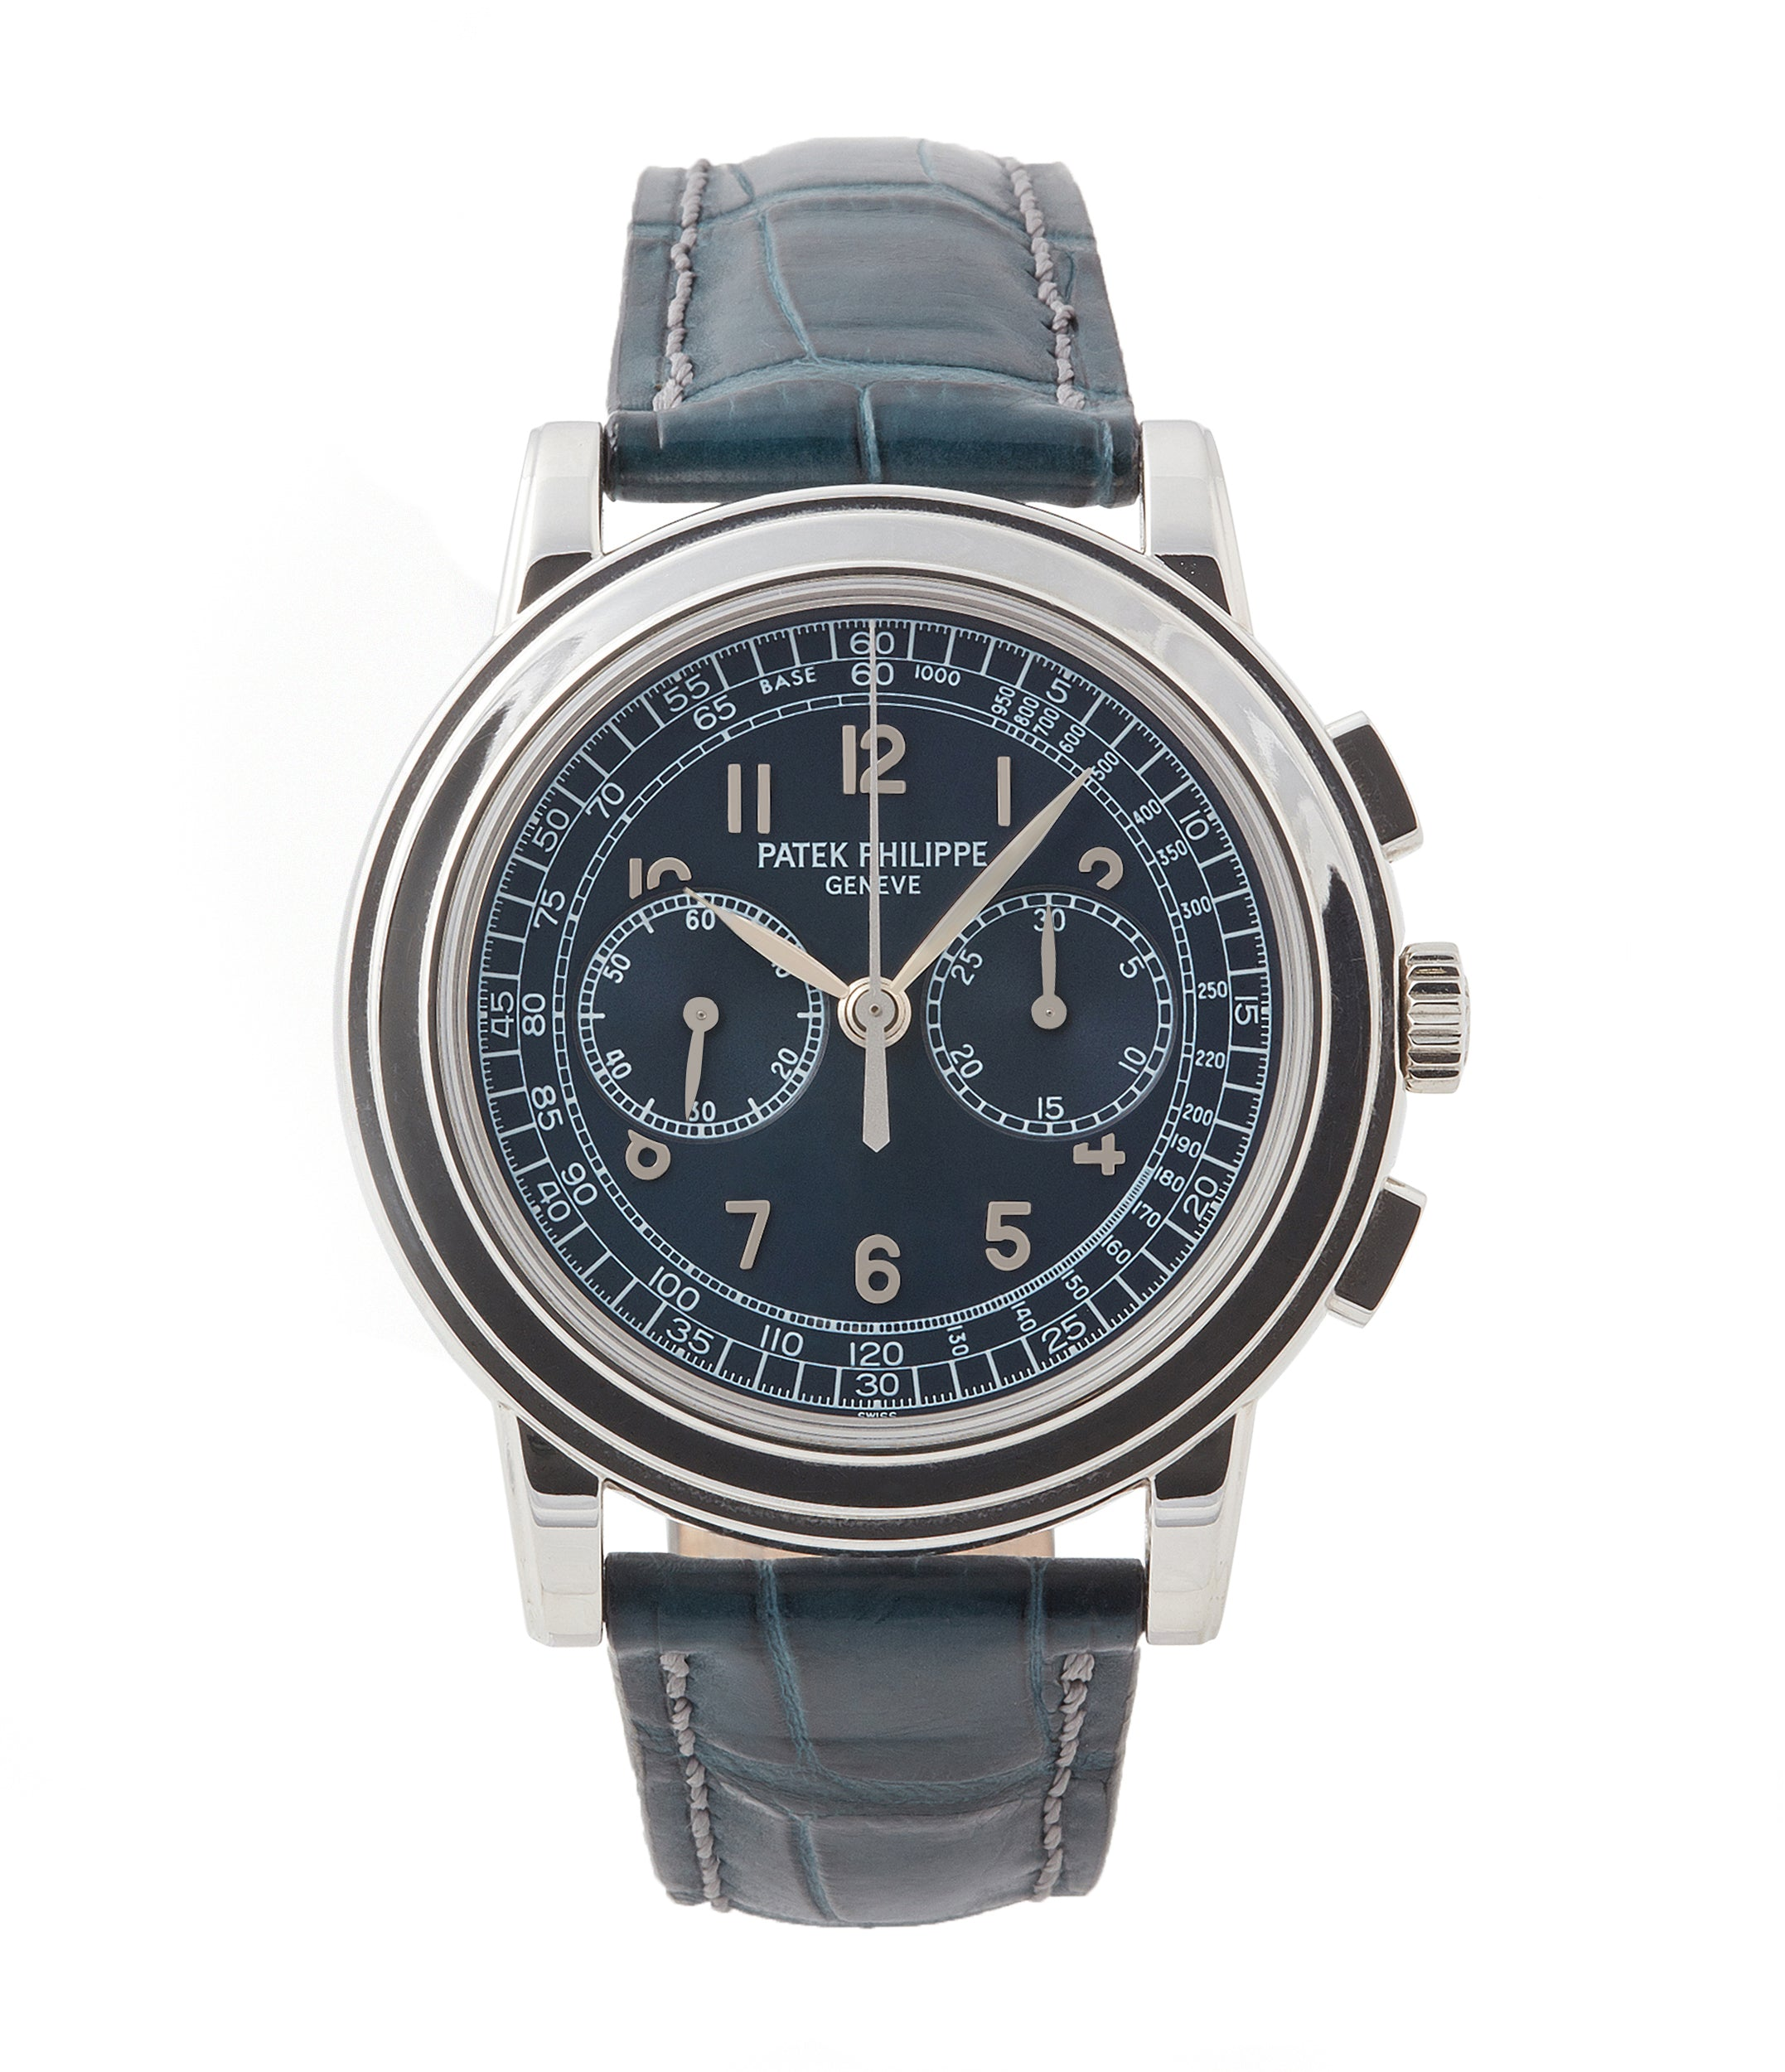 buy Patek Philippe 5070P Chronograph rare platinum 42mm luxury watch for sale online at A Collected Man London UK specialist of rare watches